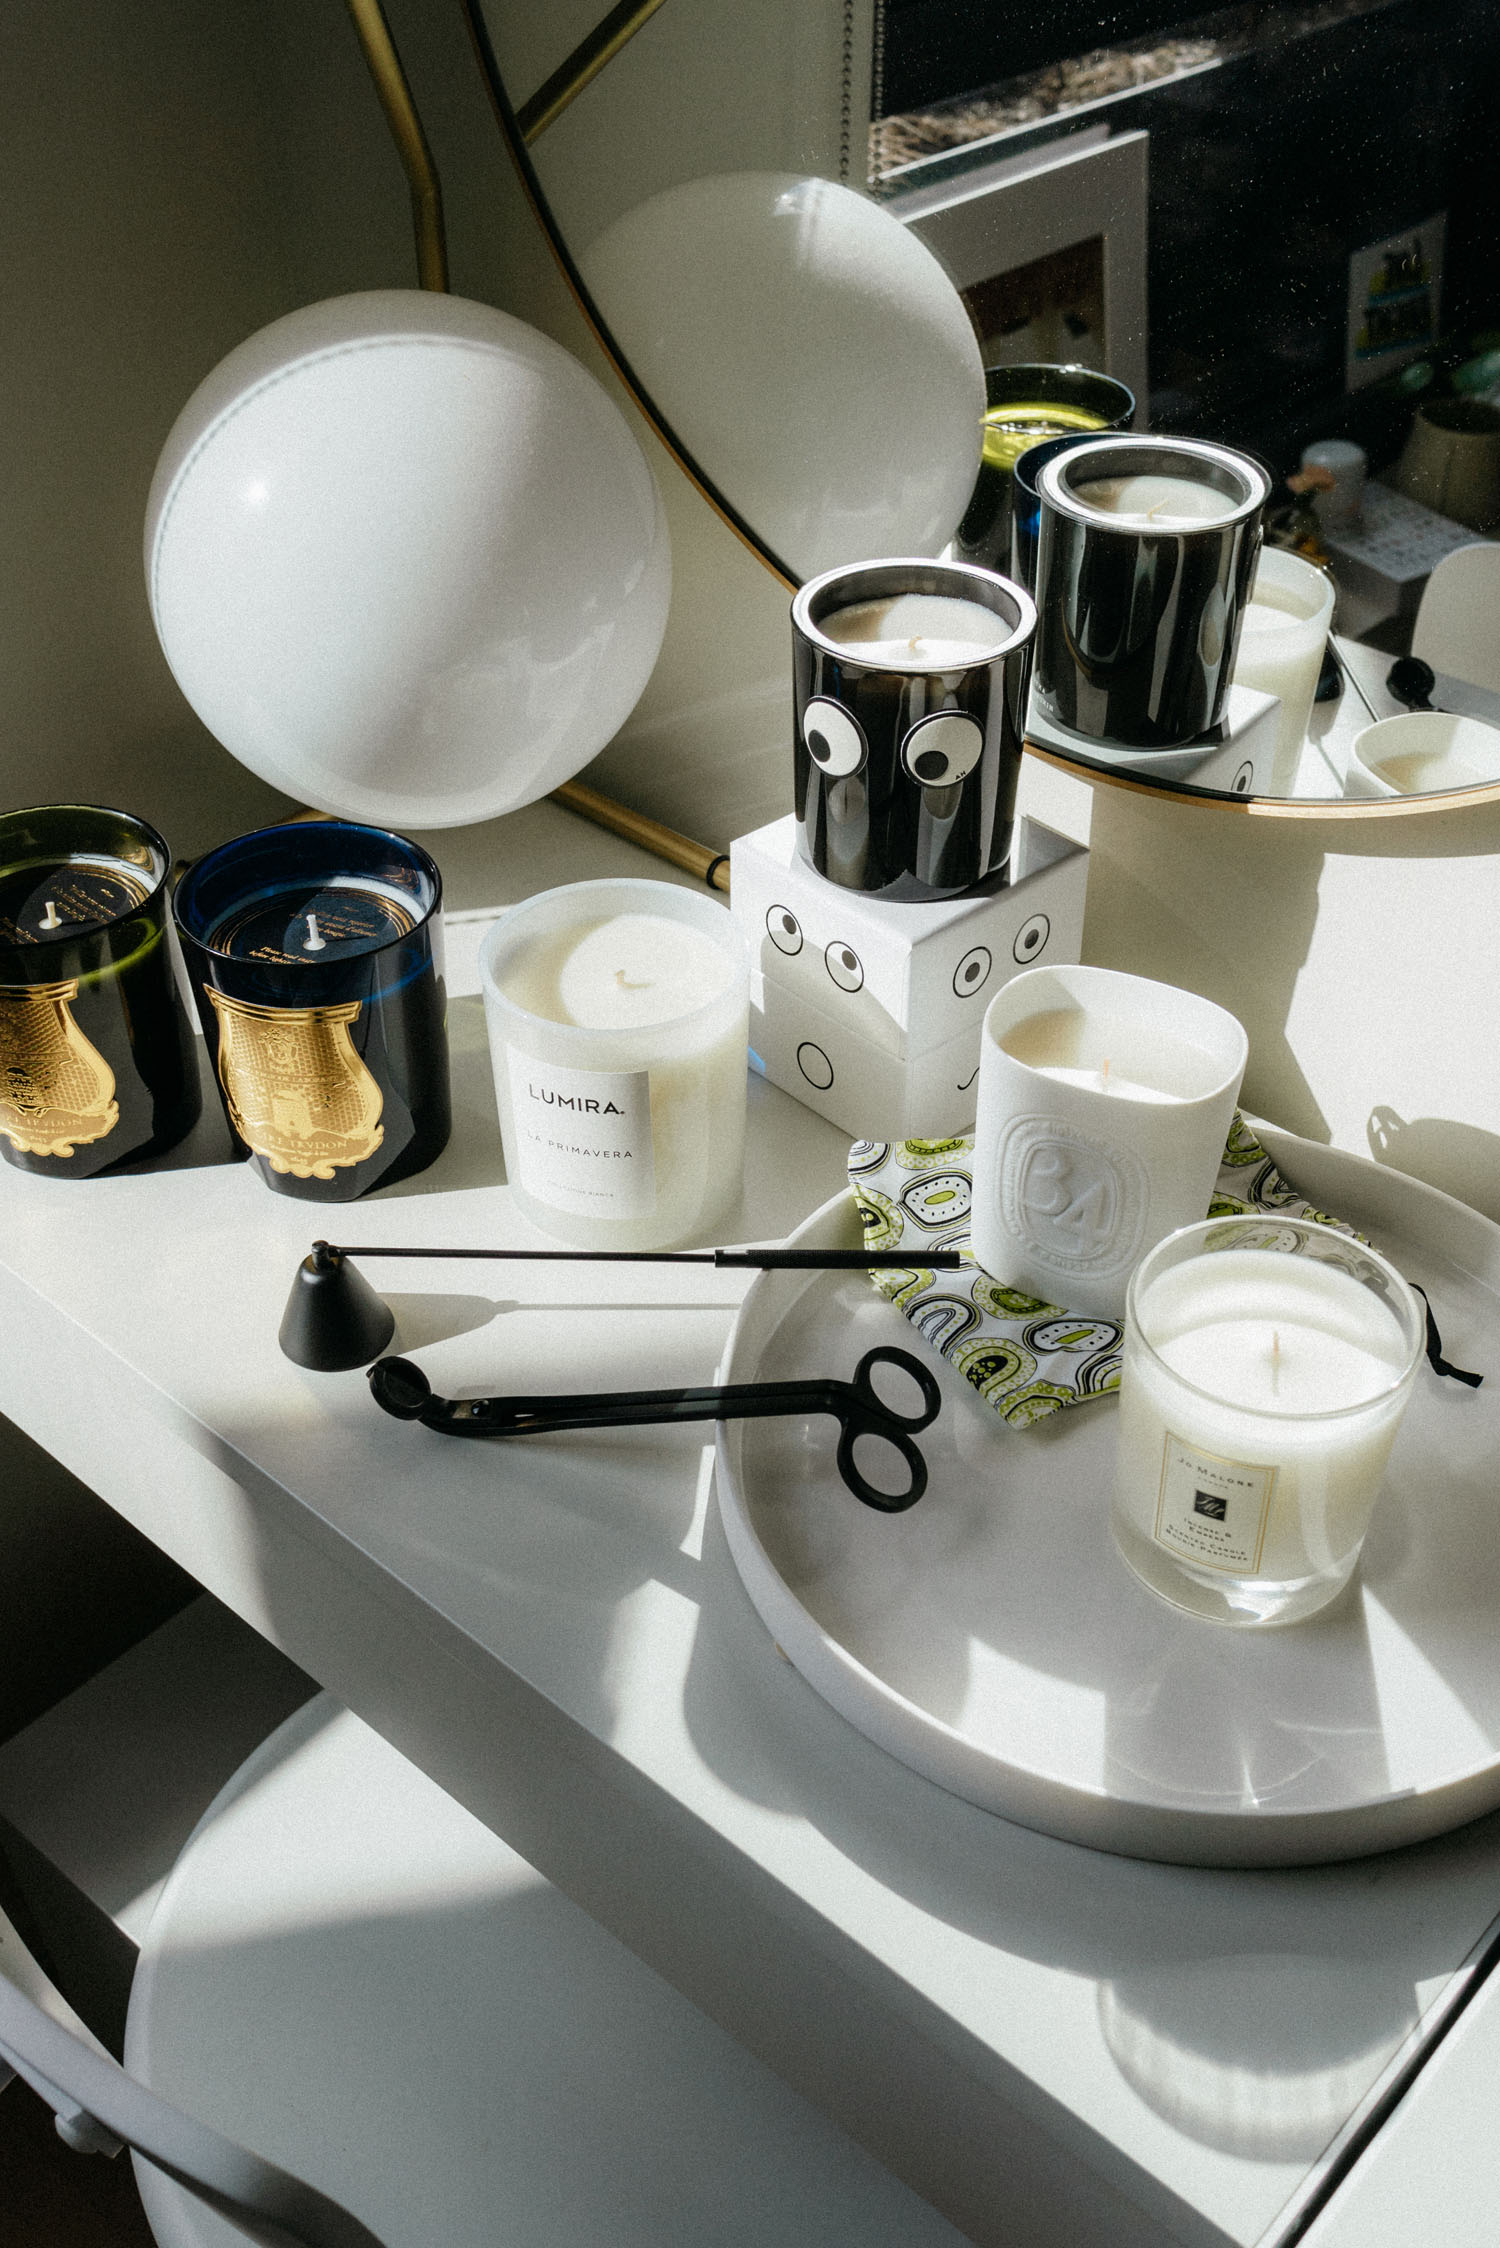 Cire Trudon Candles ,  Lumira Candle ,  Anya Hindmarch Candle ,  Diptyqye Candle ,  Jo Malone Candle